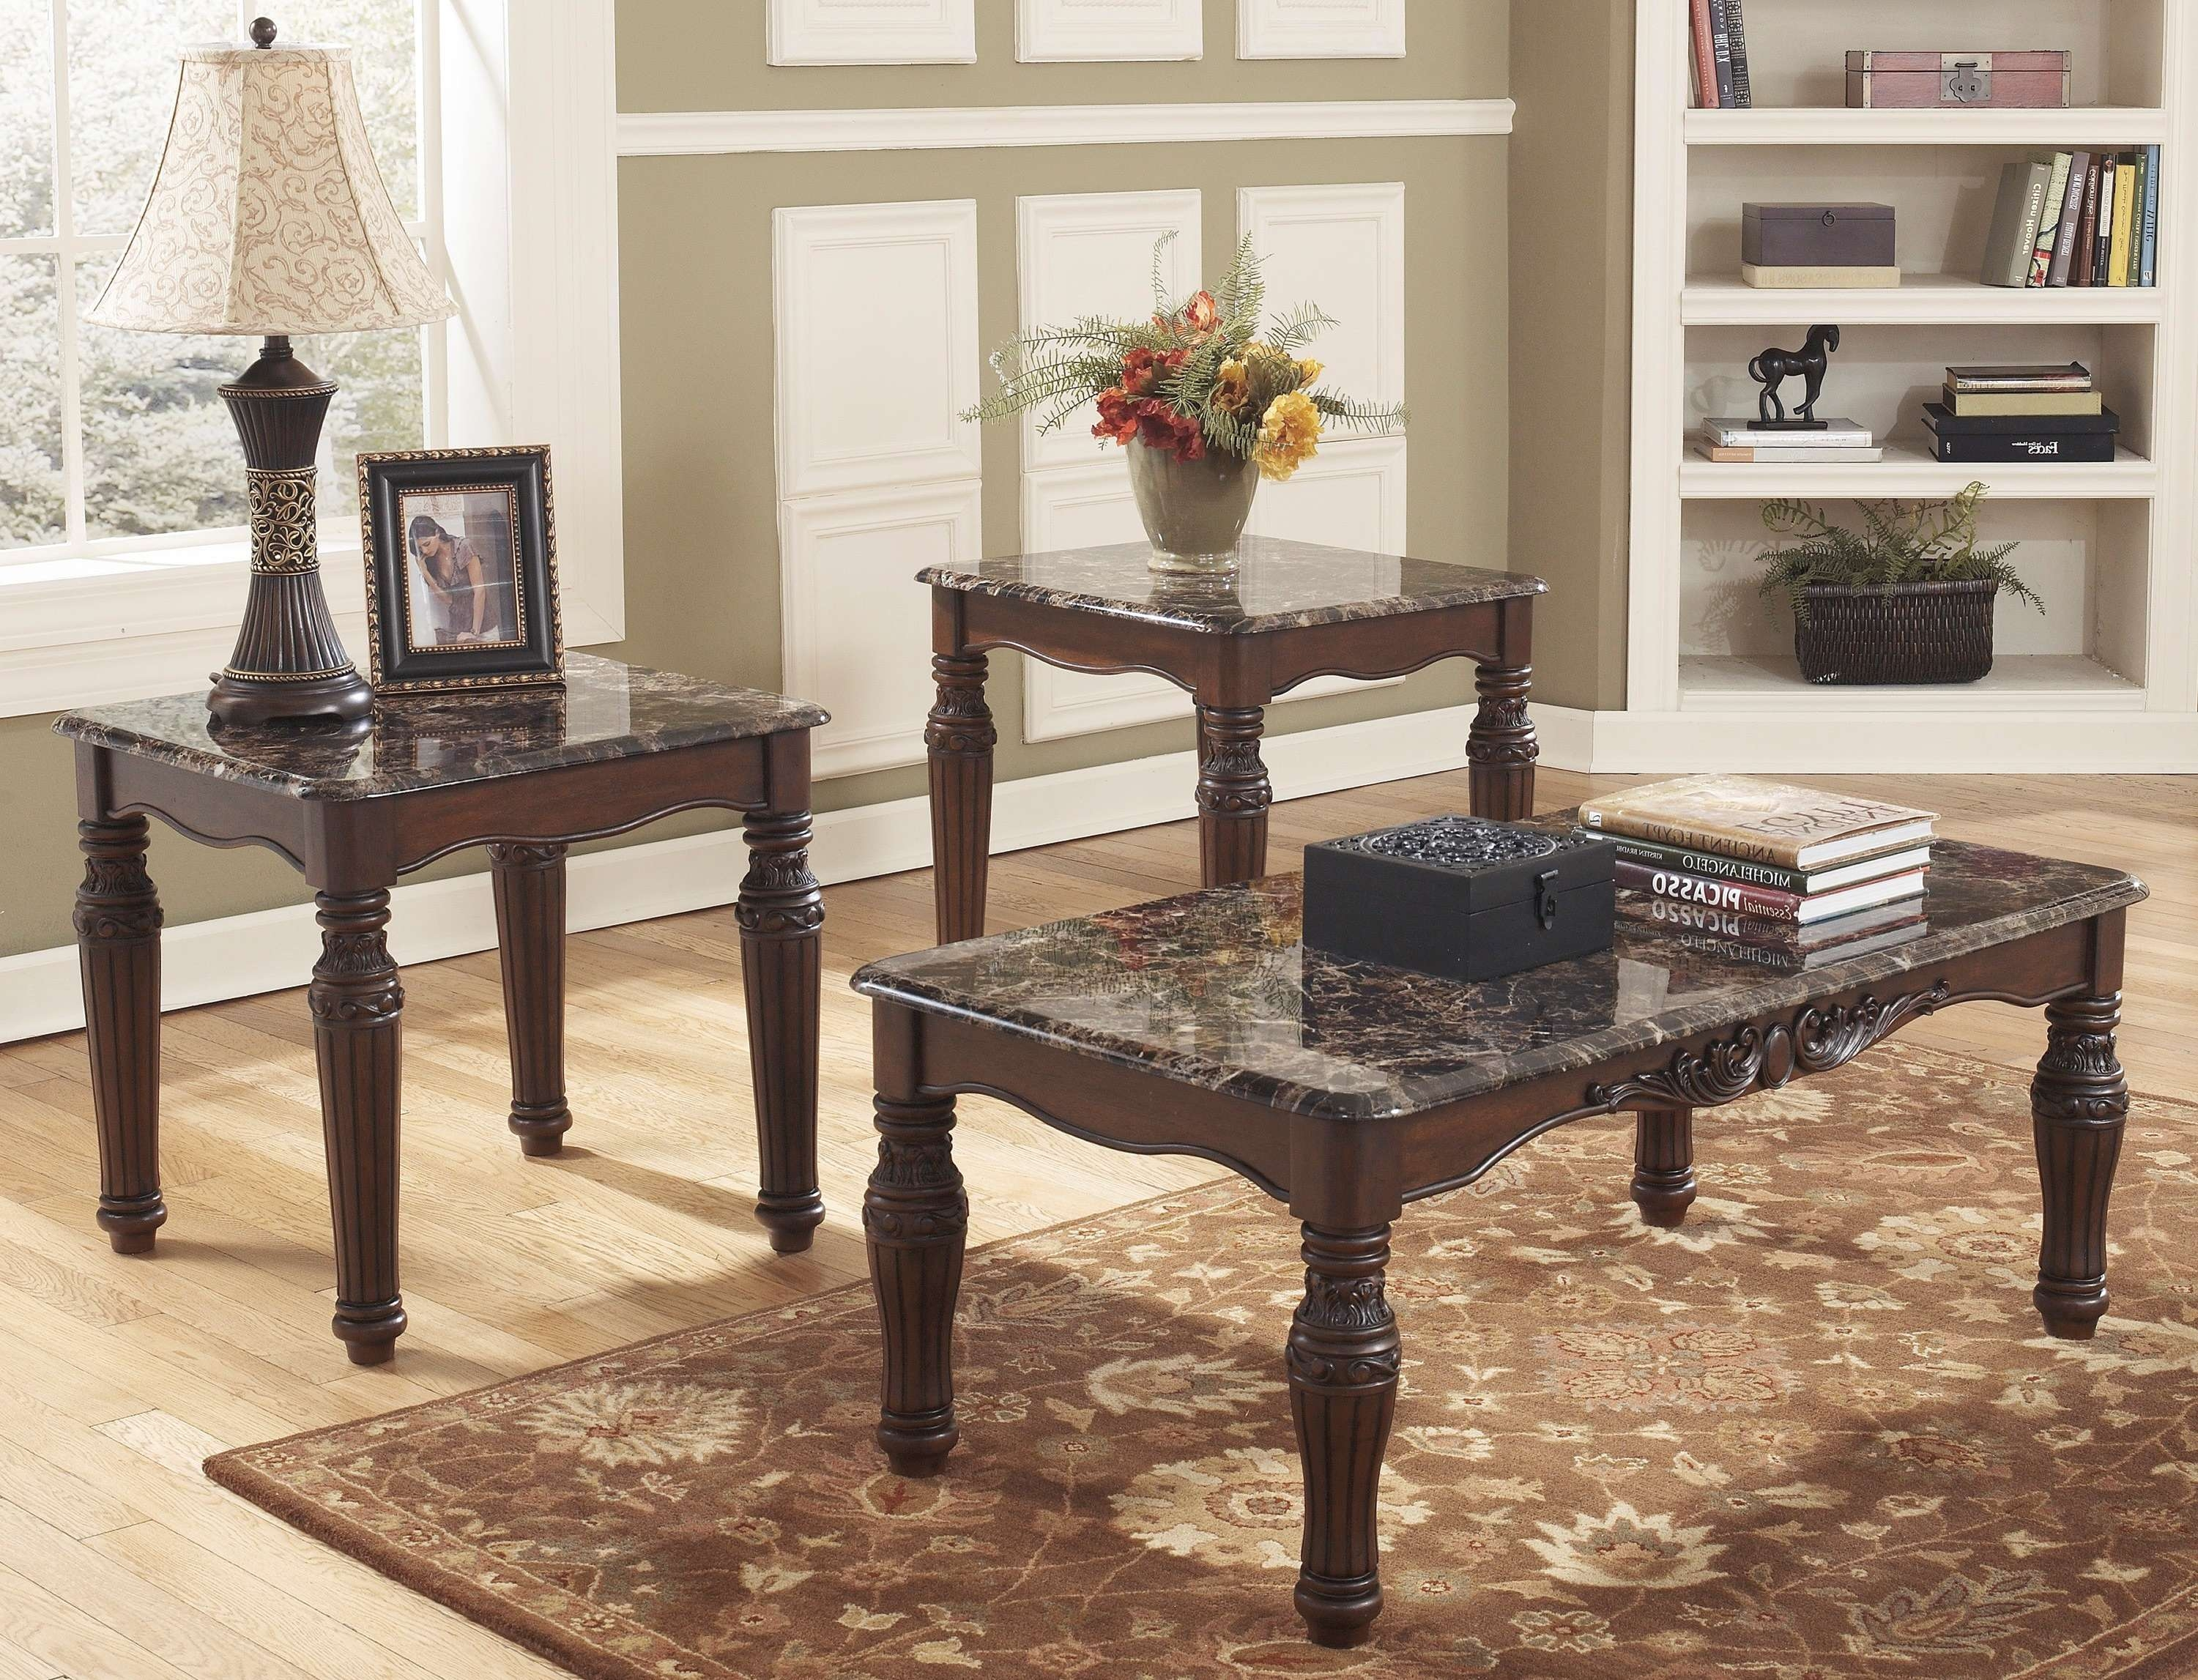 Coffee Tables : End Table Sets Round Coffee With Storage Ashley Intended For 2018 Coffee Table With Matching End Tables (View 19 of 20)